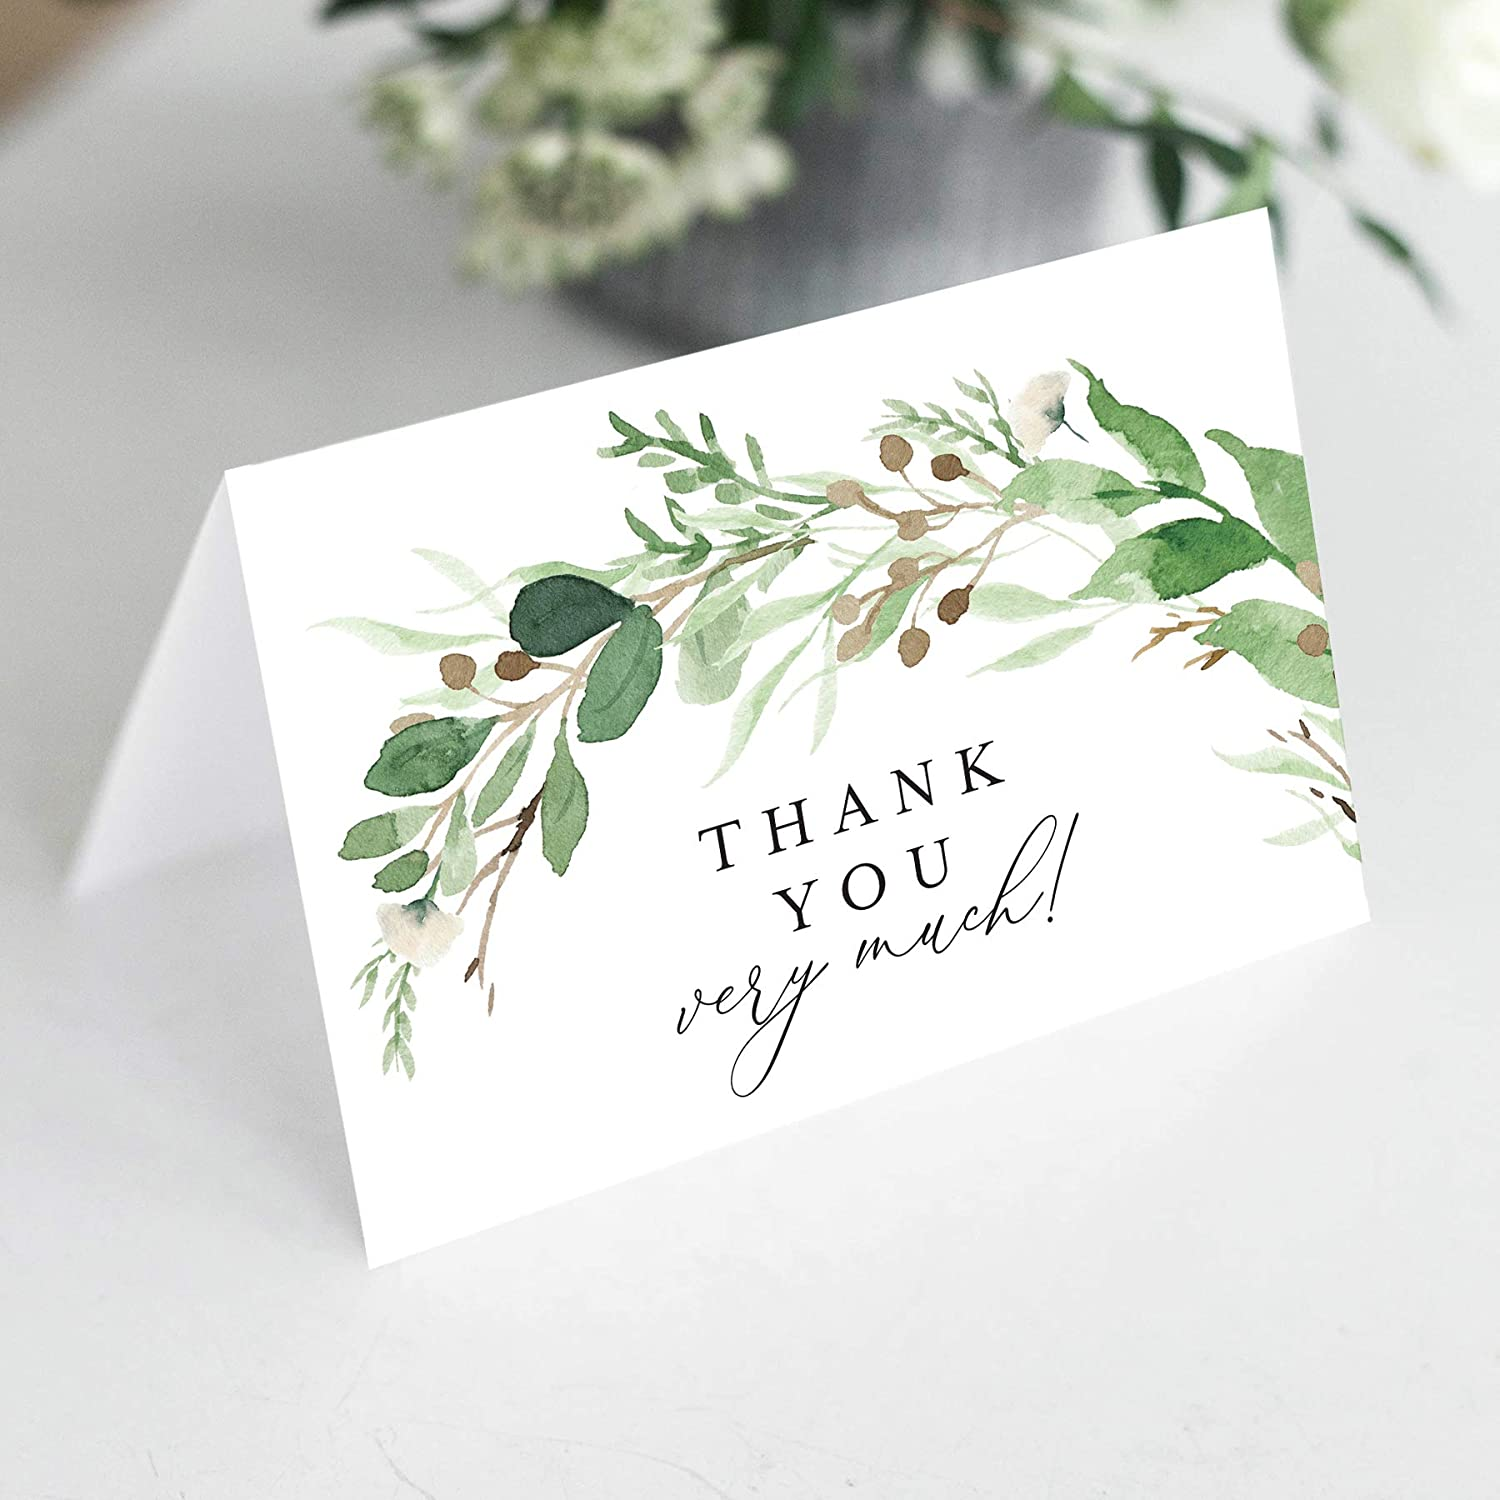 Bliss Collections Eucalyptus Greenery Thank You Cards with Envelopes, Pack of 25, 4x6 Folded, Tented, Bulk, Perfect for: Wedding, Bridal Shower, Baby Shower, Birthday, Funeral or Special Event